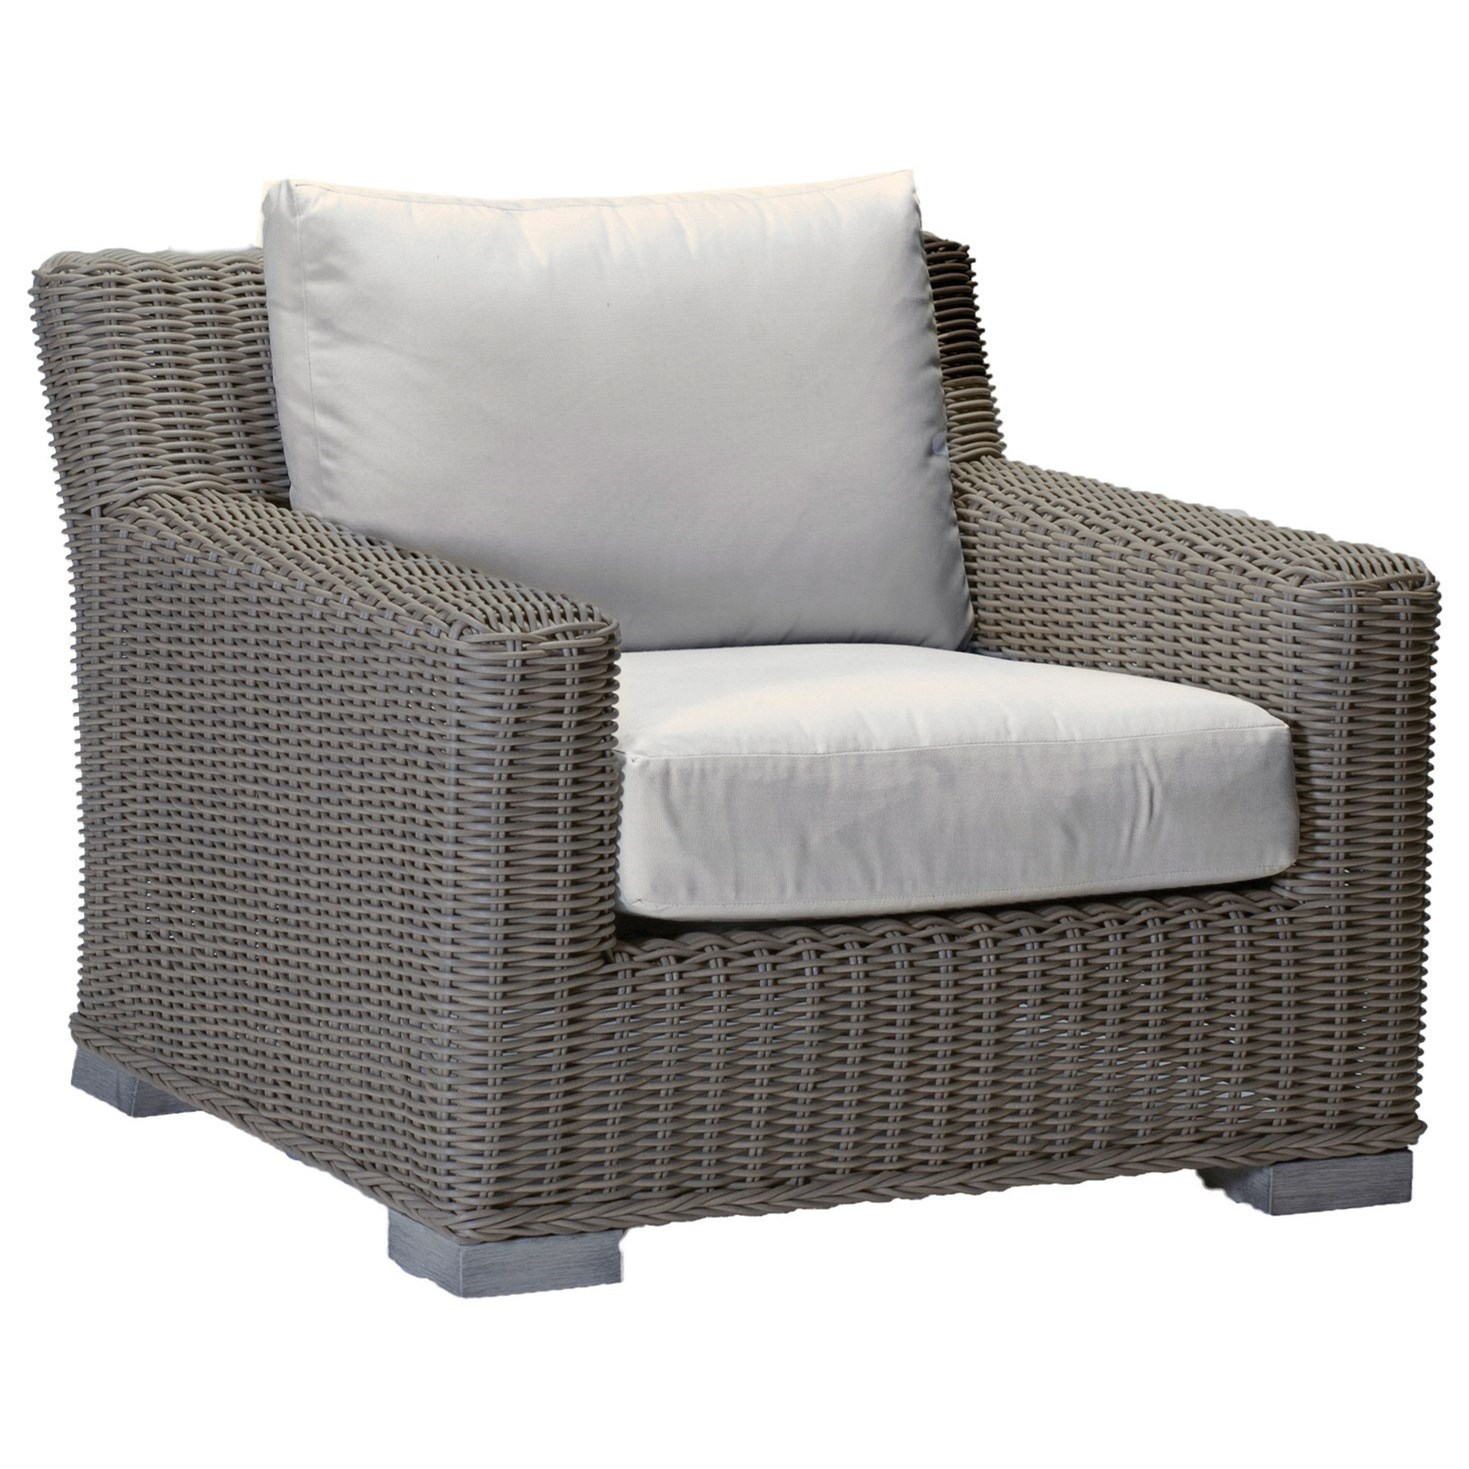 Rustic Rustic Lounge Chair by Summer Classics at Malouf Furniture Co.